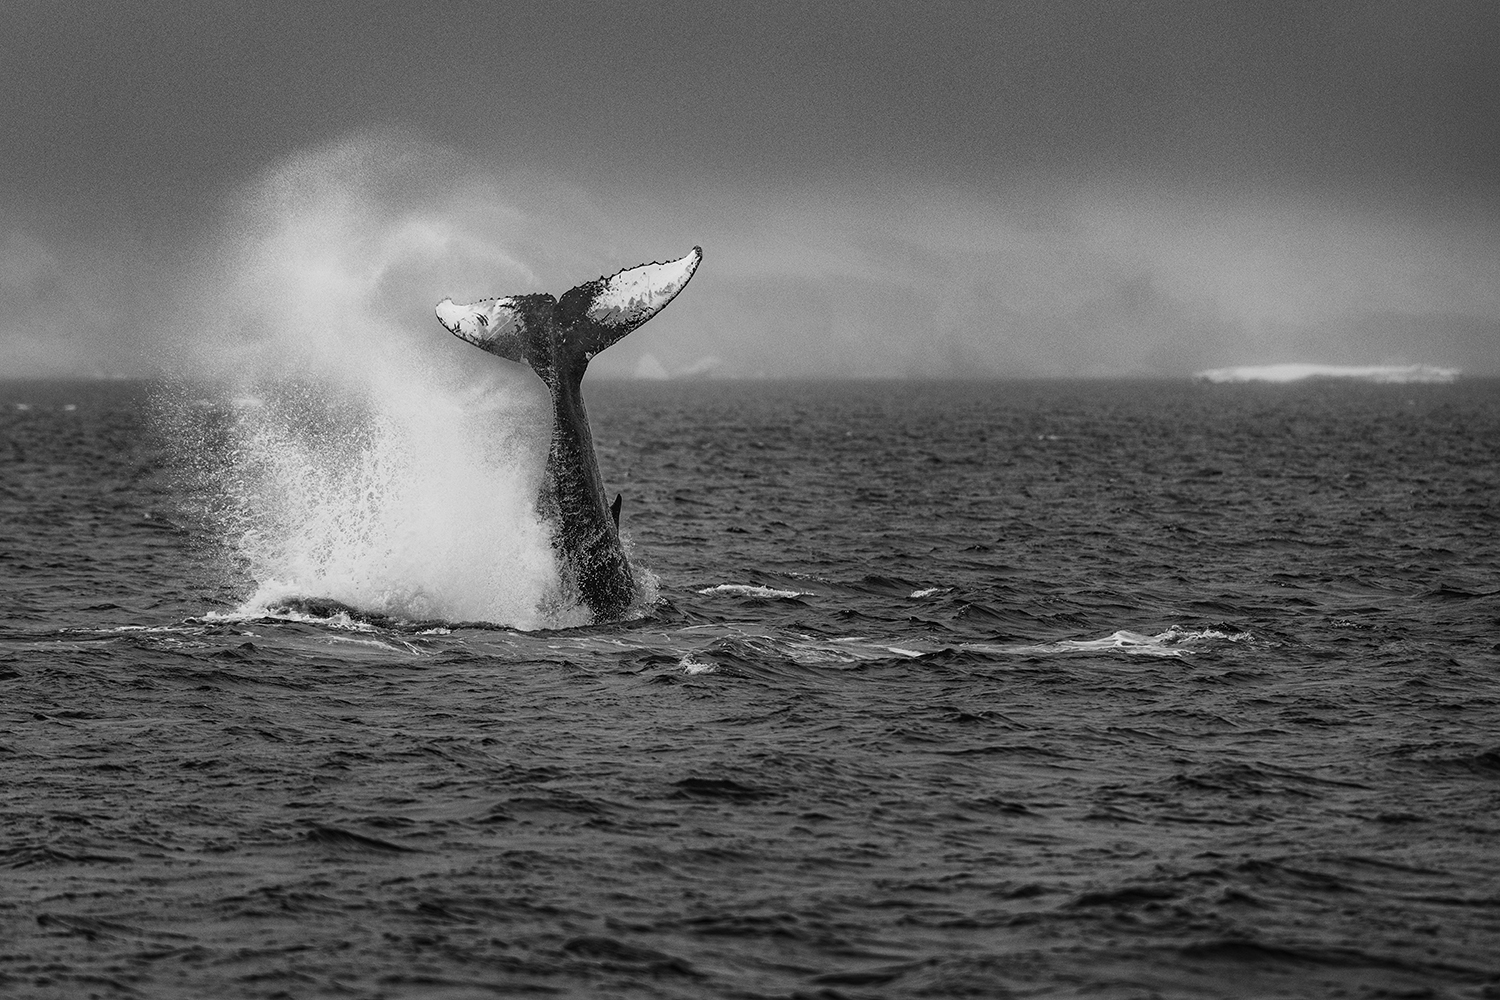 Humpback whale breaching the surface while feeding in Palmer Archipelago, off the coast of the Antarctic Peninsula.